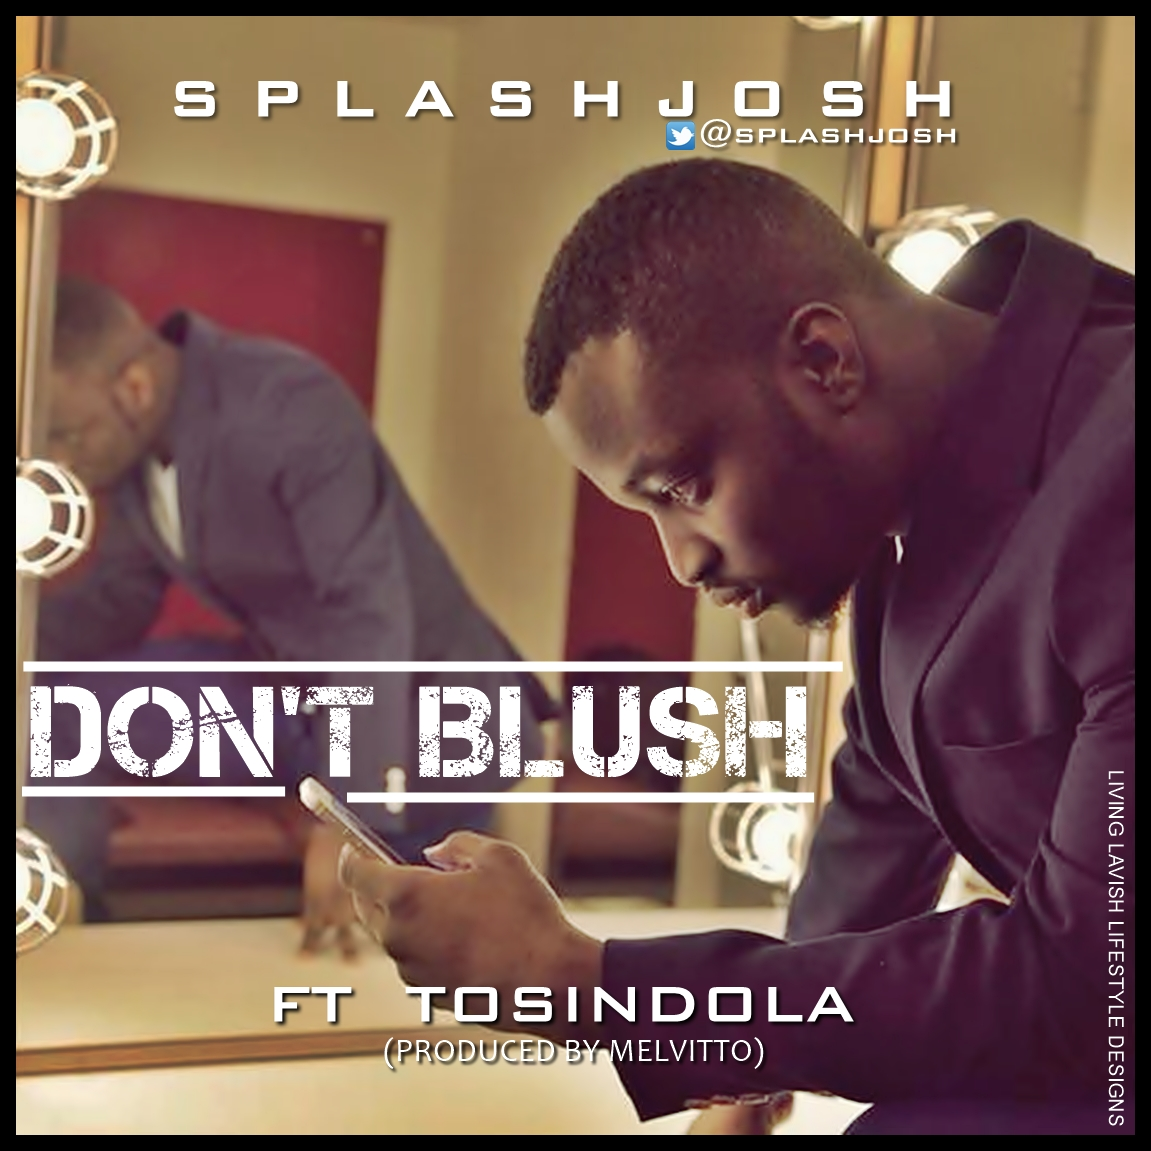 SplashJosh-Artwork-Dont-Blush